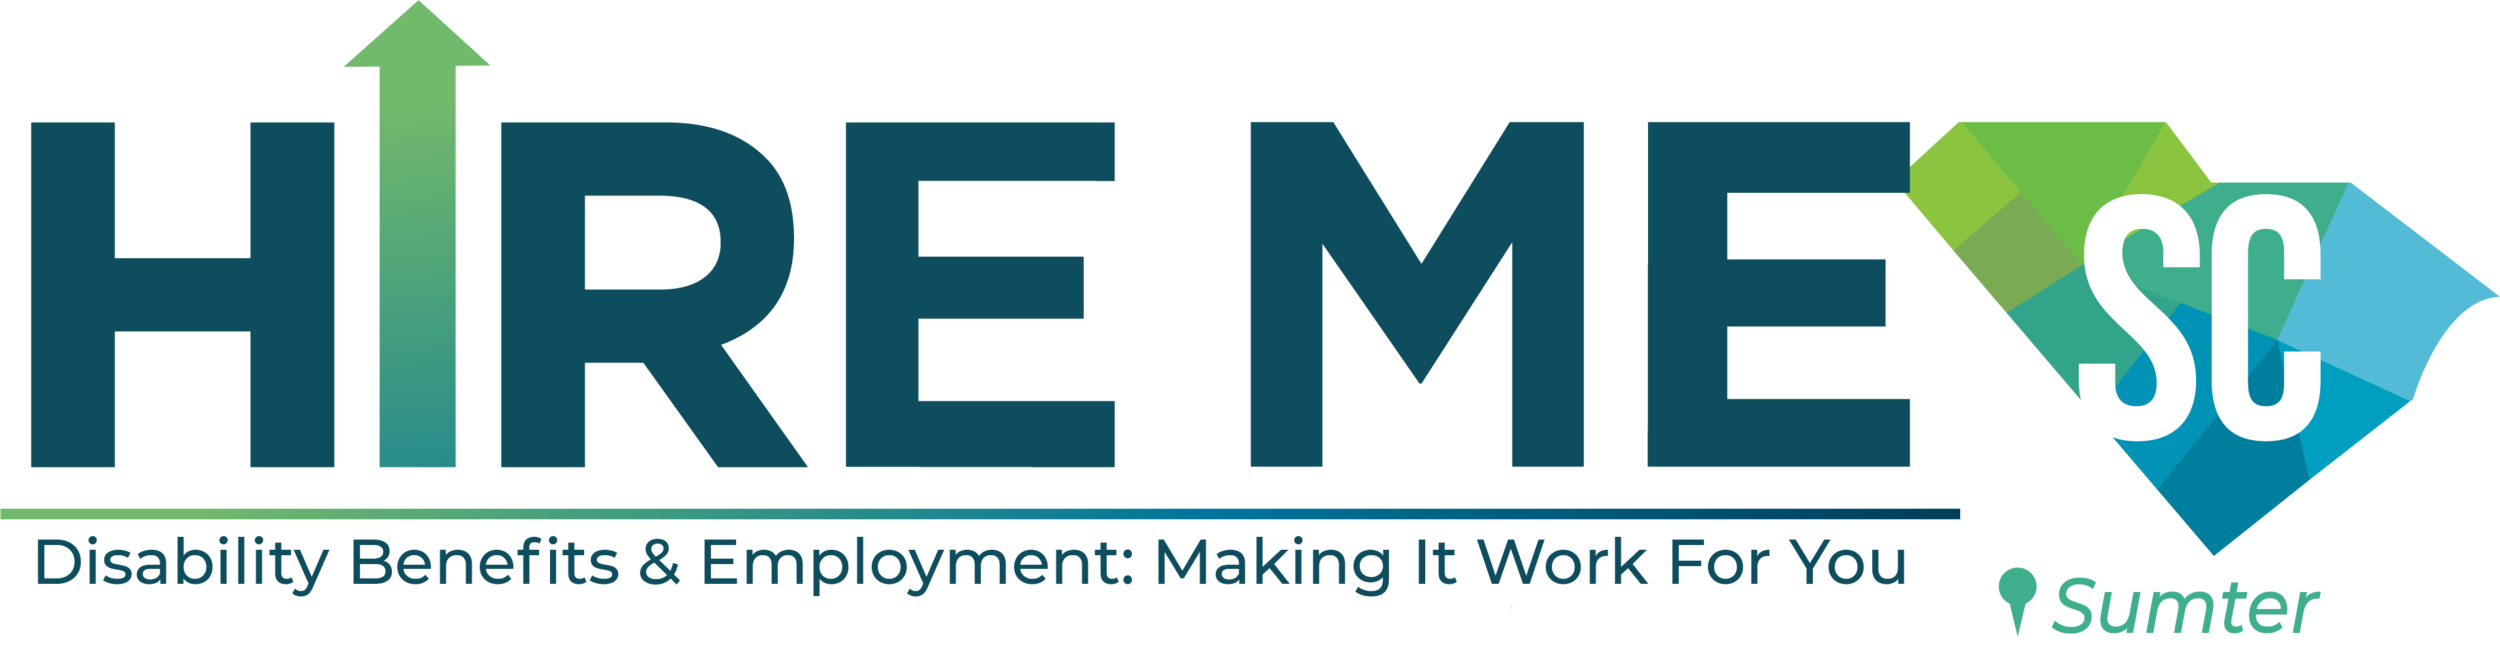 """[image: """"Hire Me"""" in dark blue with the letter """"I"""" an arrow pointing upward. Below this, it says """"Disability Benefits & Employment: Making it Work for You!"""" Next to """"Hire Me"""" is an outline of the state of SC with an """"SC"""" inside of it. Below it is a pin drop and """"Sumter"""" in green letters.]"""